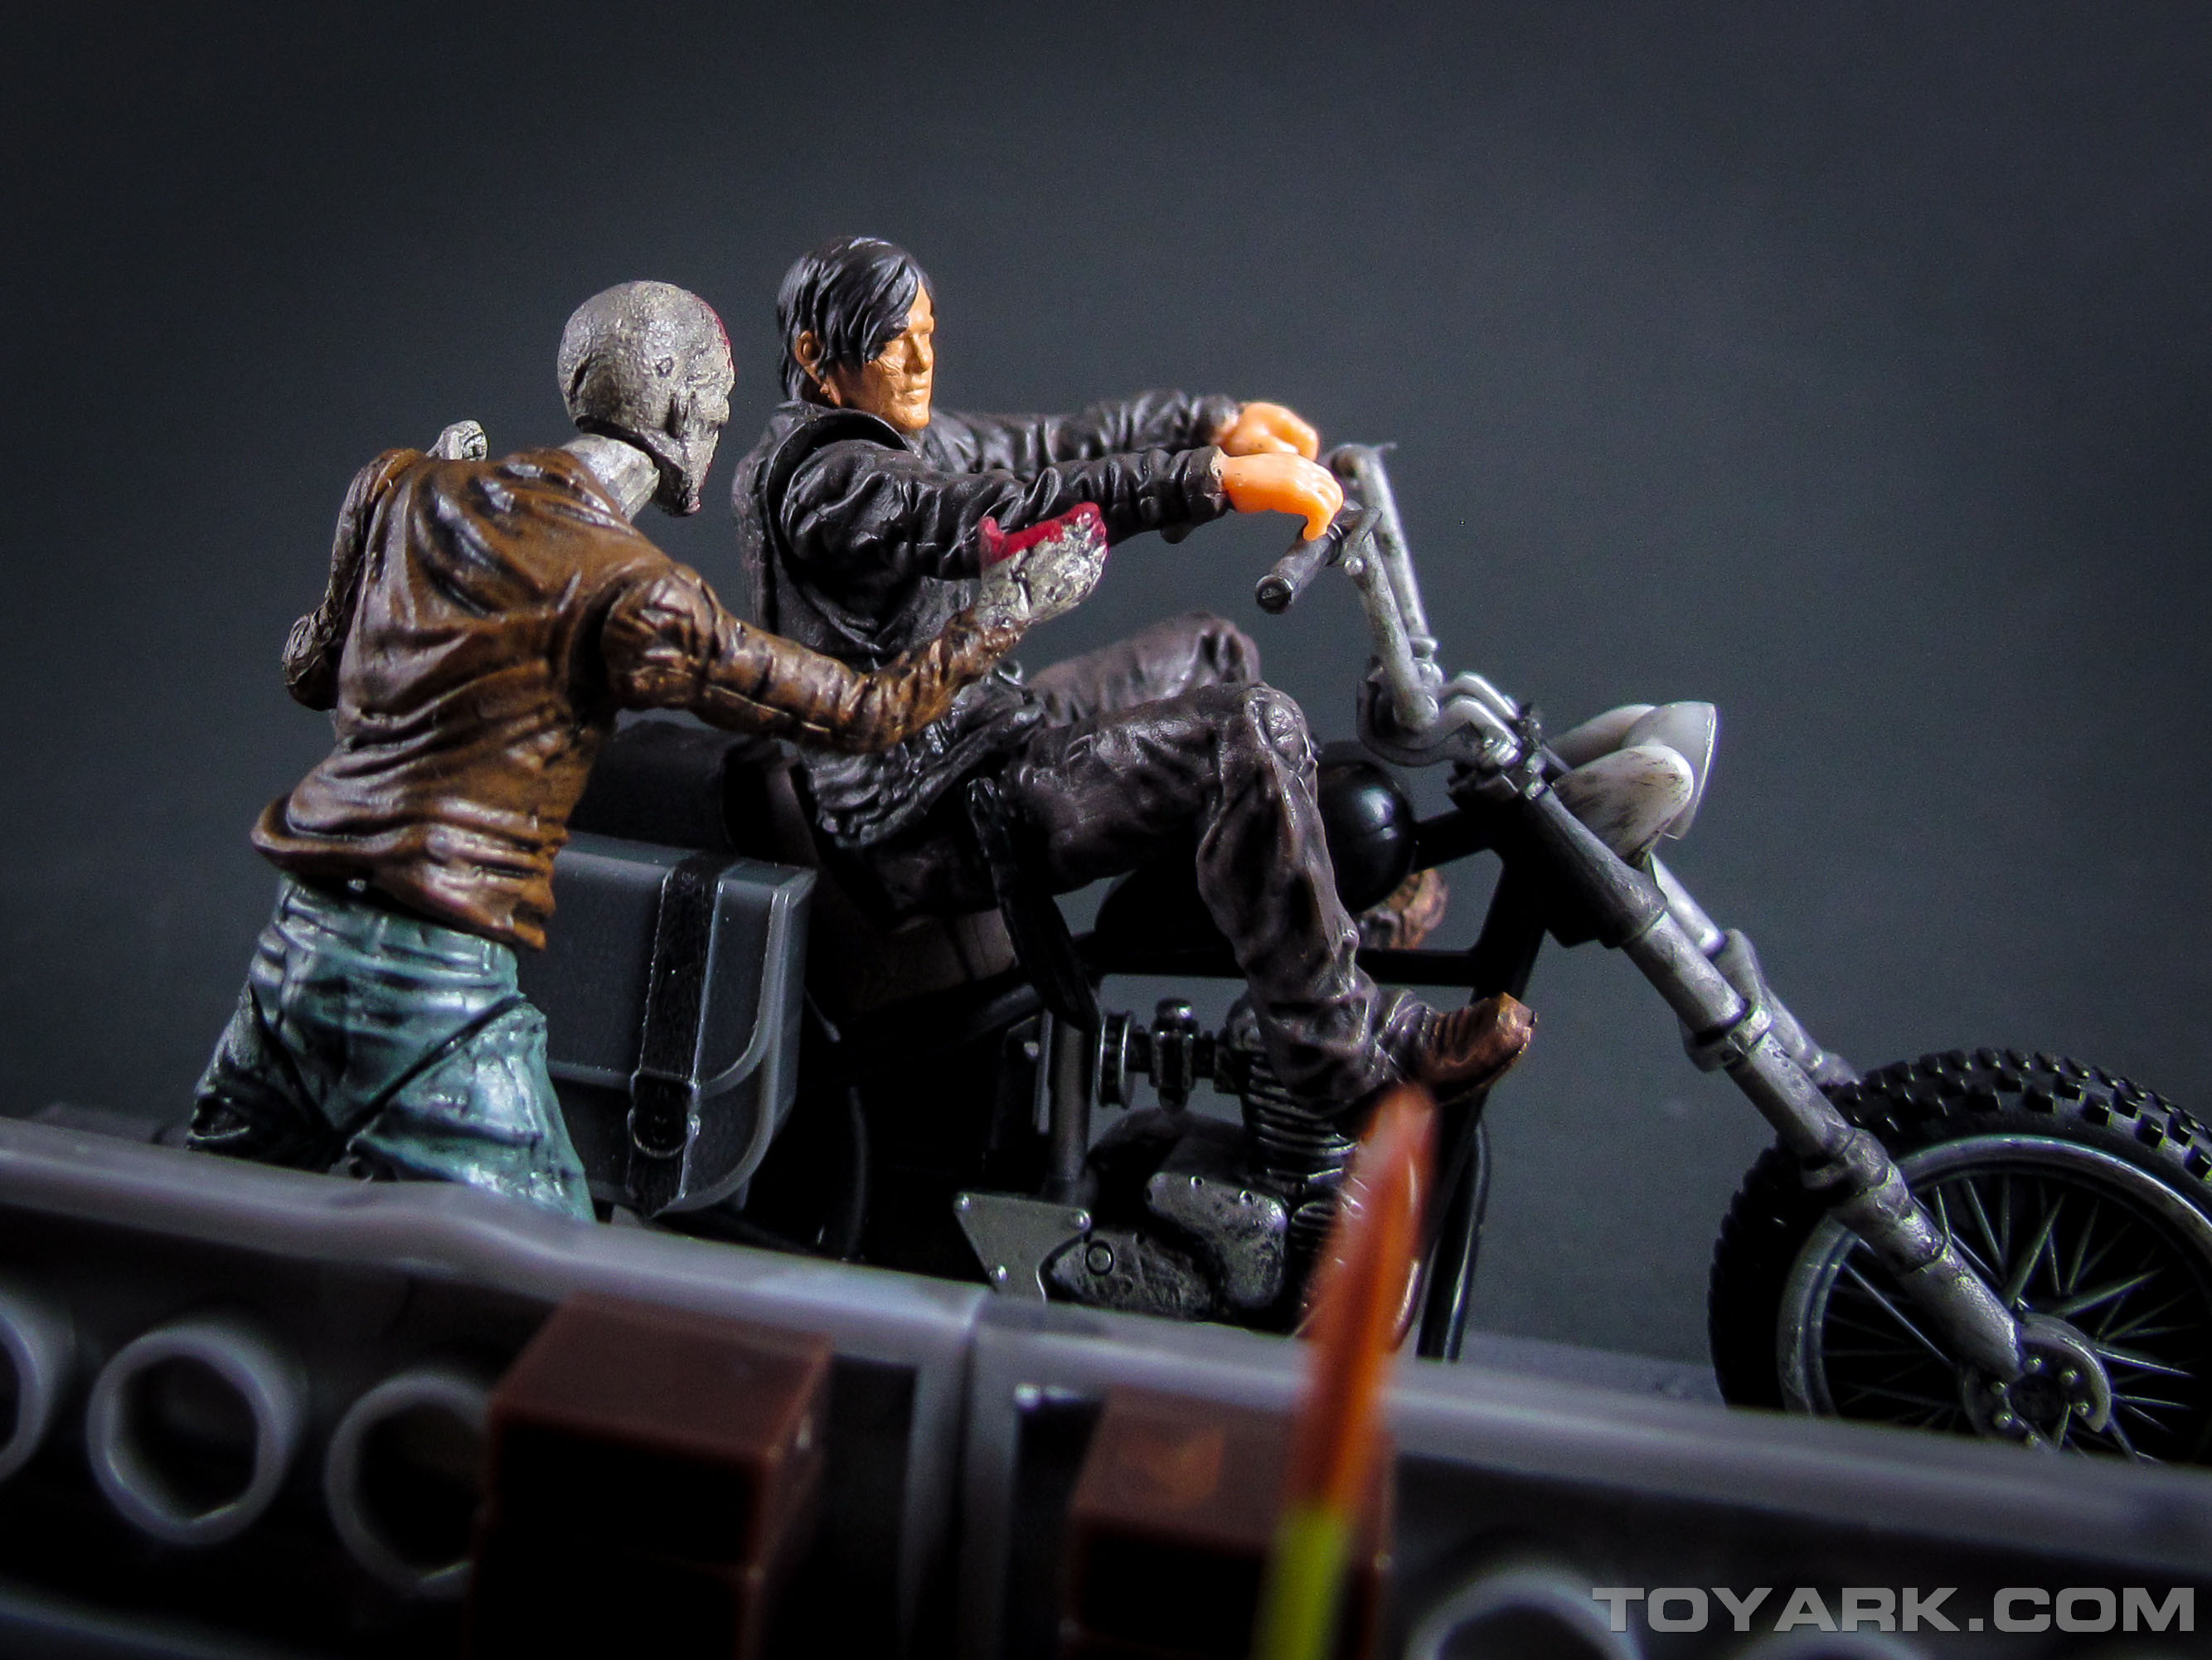 Walking Dead Daryl Dixon with Motorcycle Building Set 050